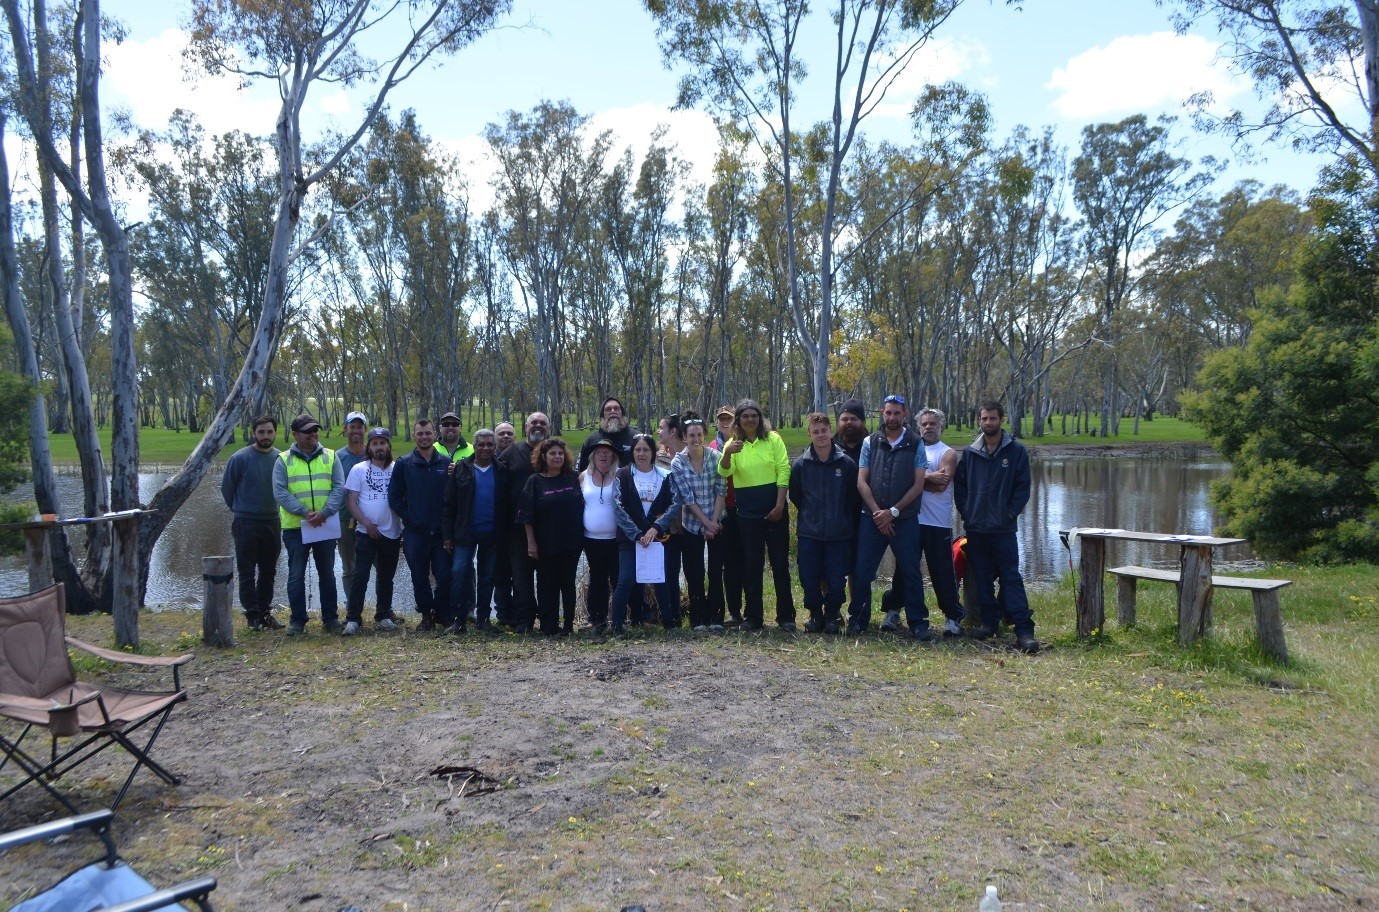 Participants on the Towards Cultural Flows Glenelg River Trip at Fulham reserve – including BGLC, Gunditjmara Traditional Owners, MLDRIN and CMA staff